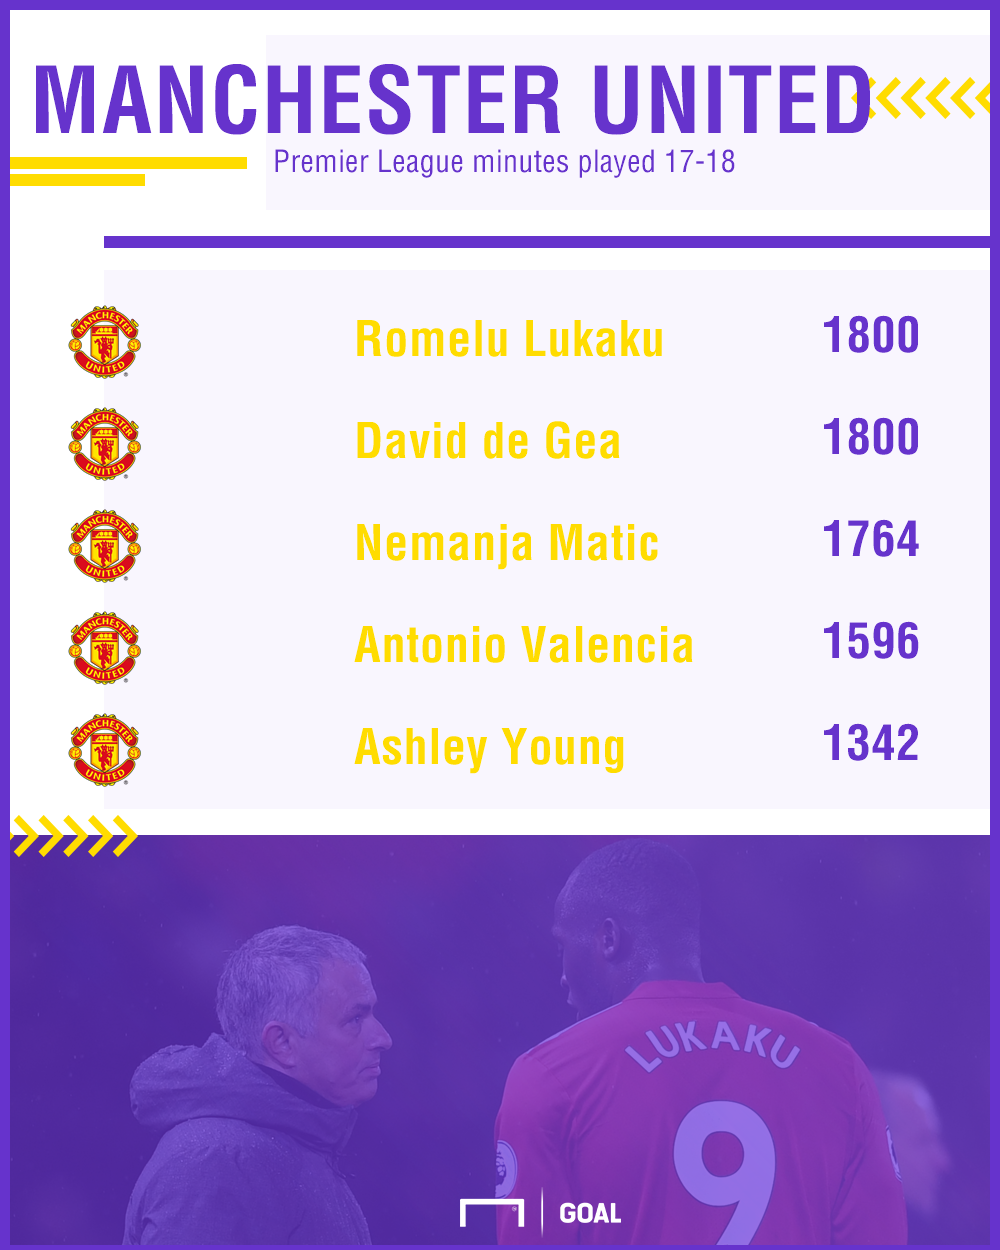 Manchester United Premier League minutes